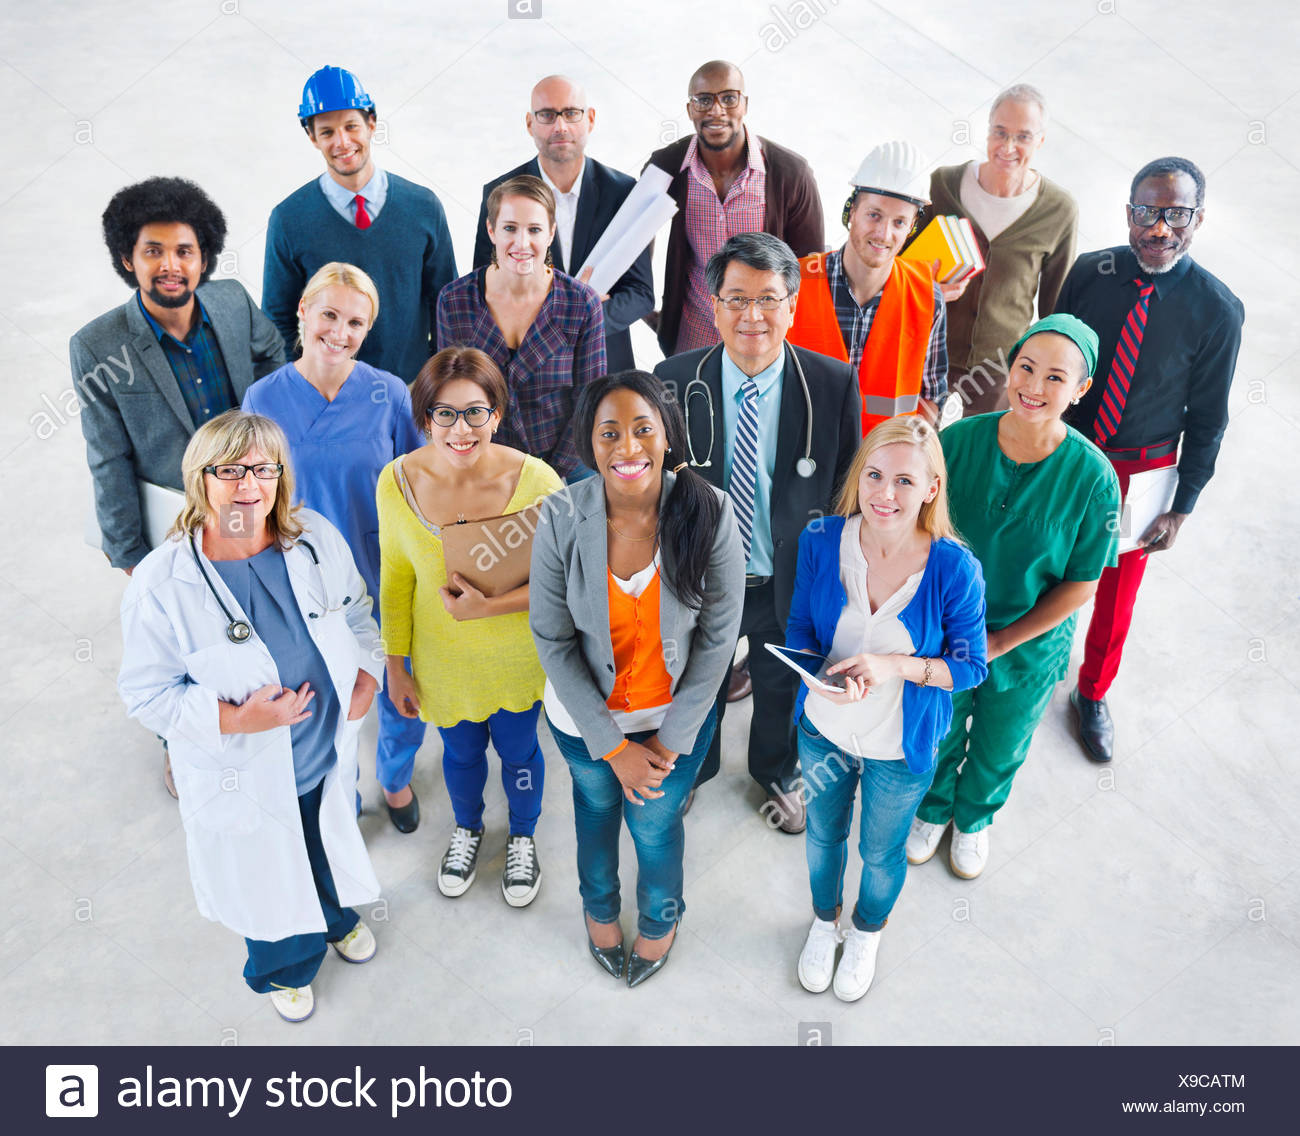 Group of Diverse Multiethnic People with Various Jobs - Stock Image